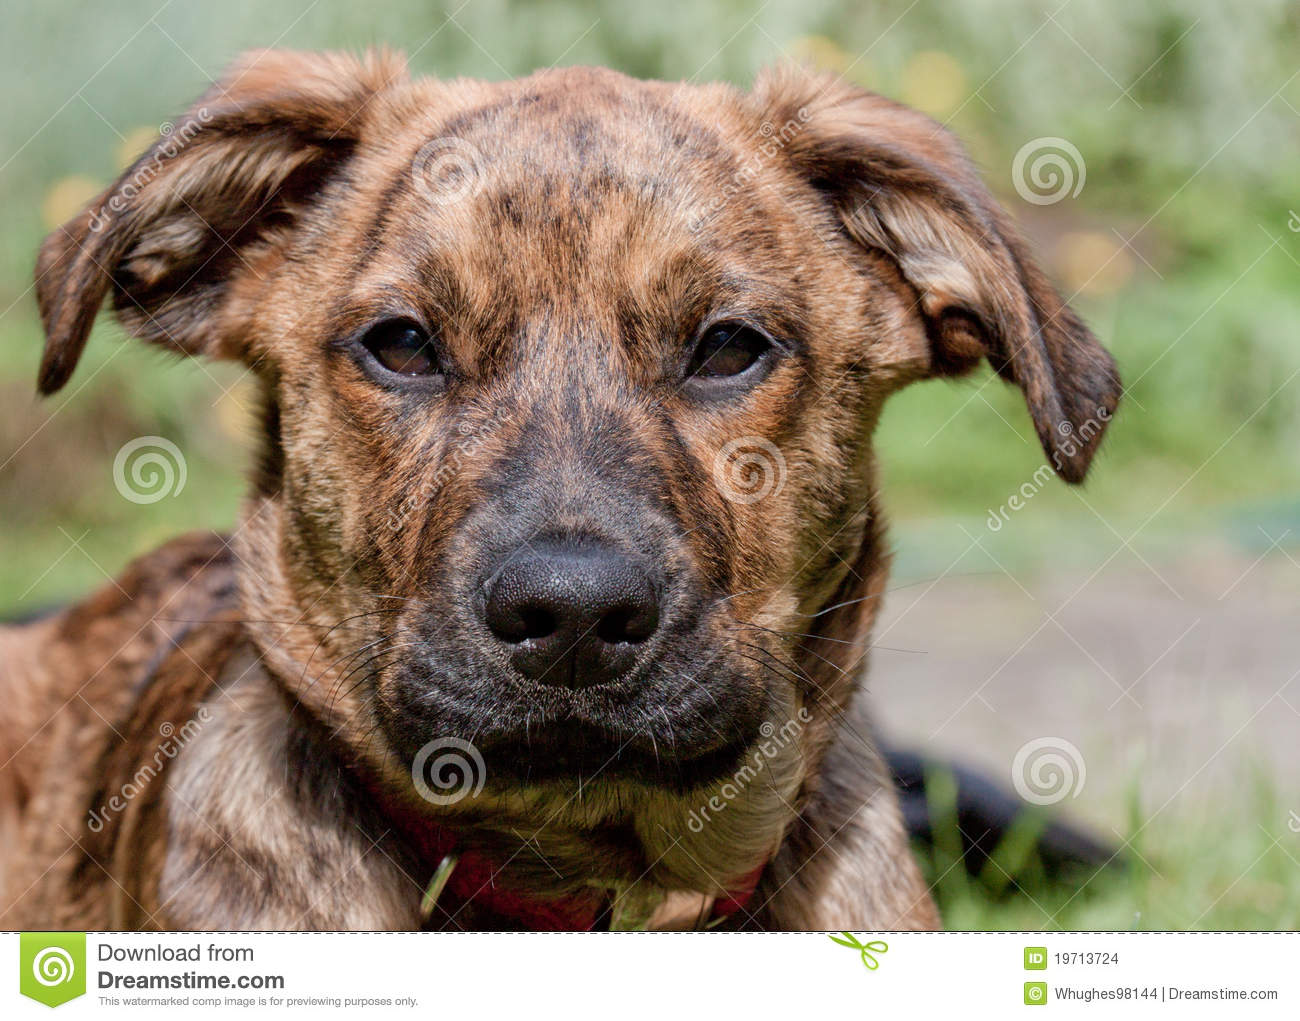 Brindled Plott hound puppy stock photo. Image of brindle ...